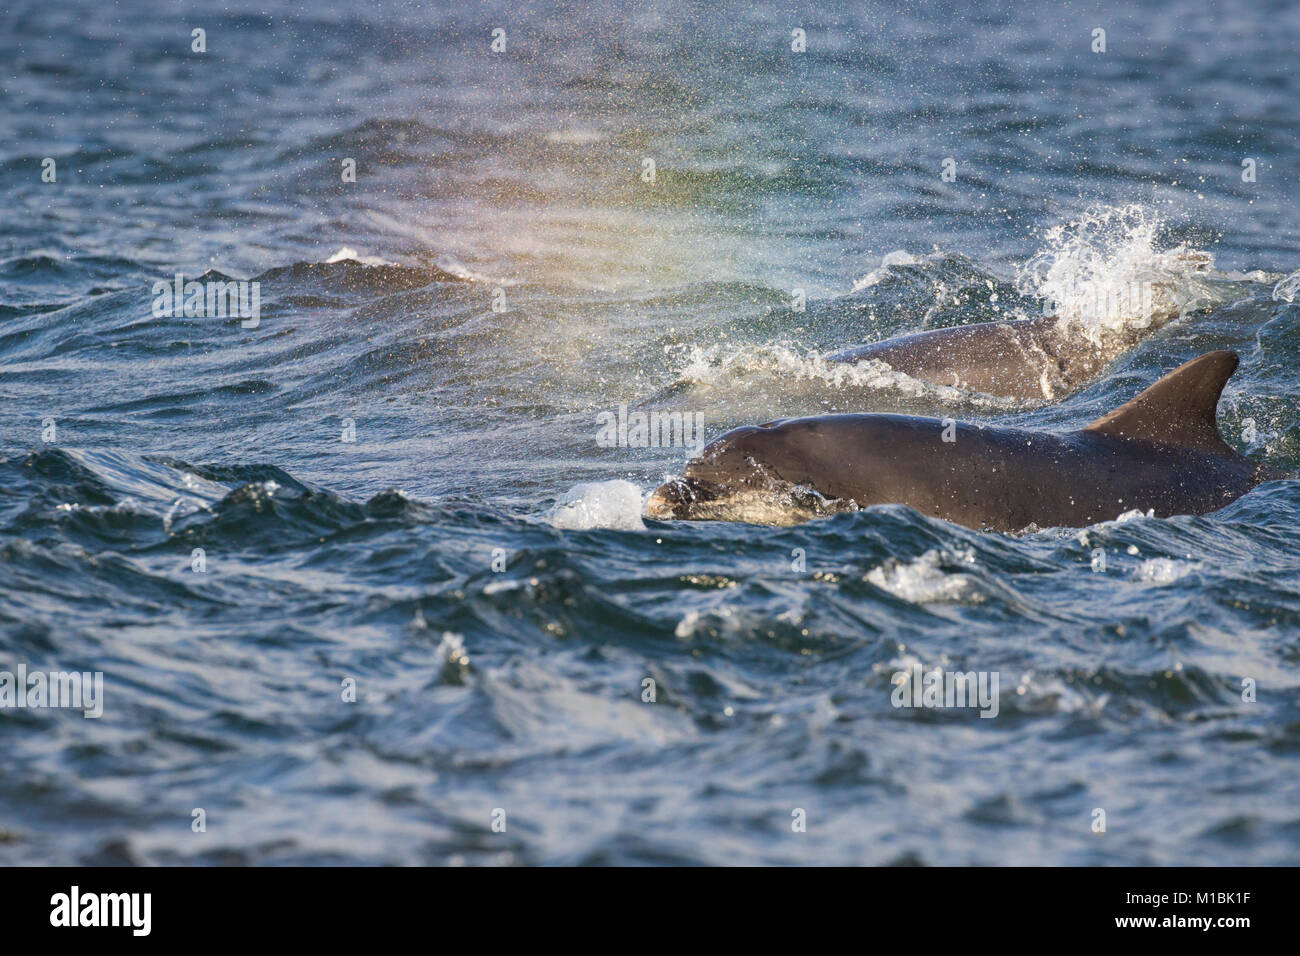 Pod of Bottlenose dolphins (Tursiops truncatus) surfacing in the Moray Firth, Chanonry Point, Scotland, UK Stock Photo